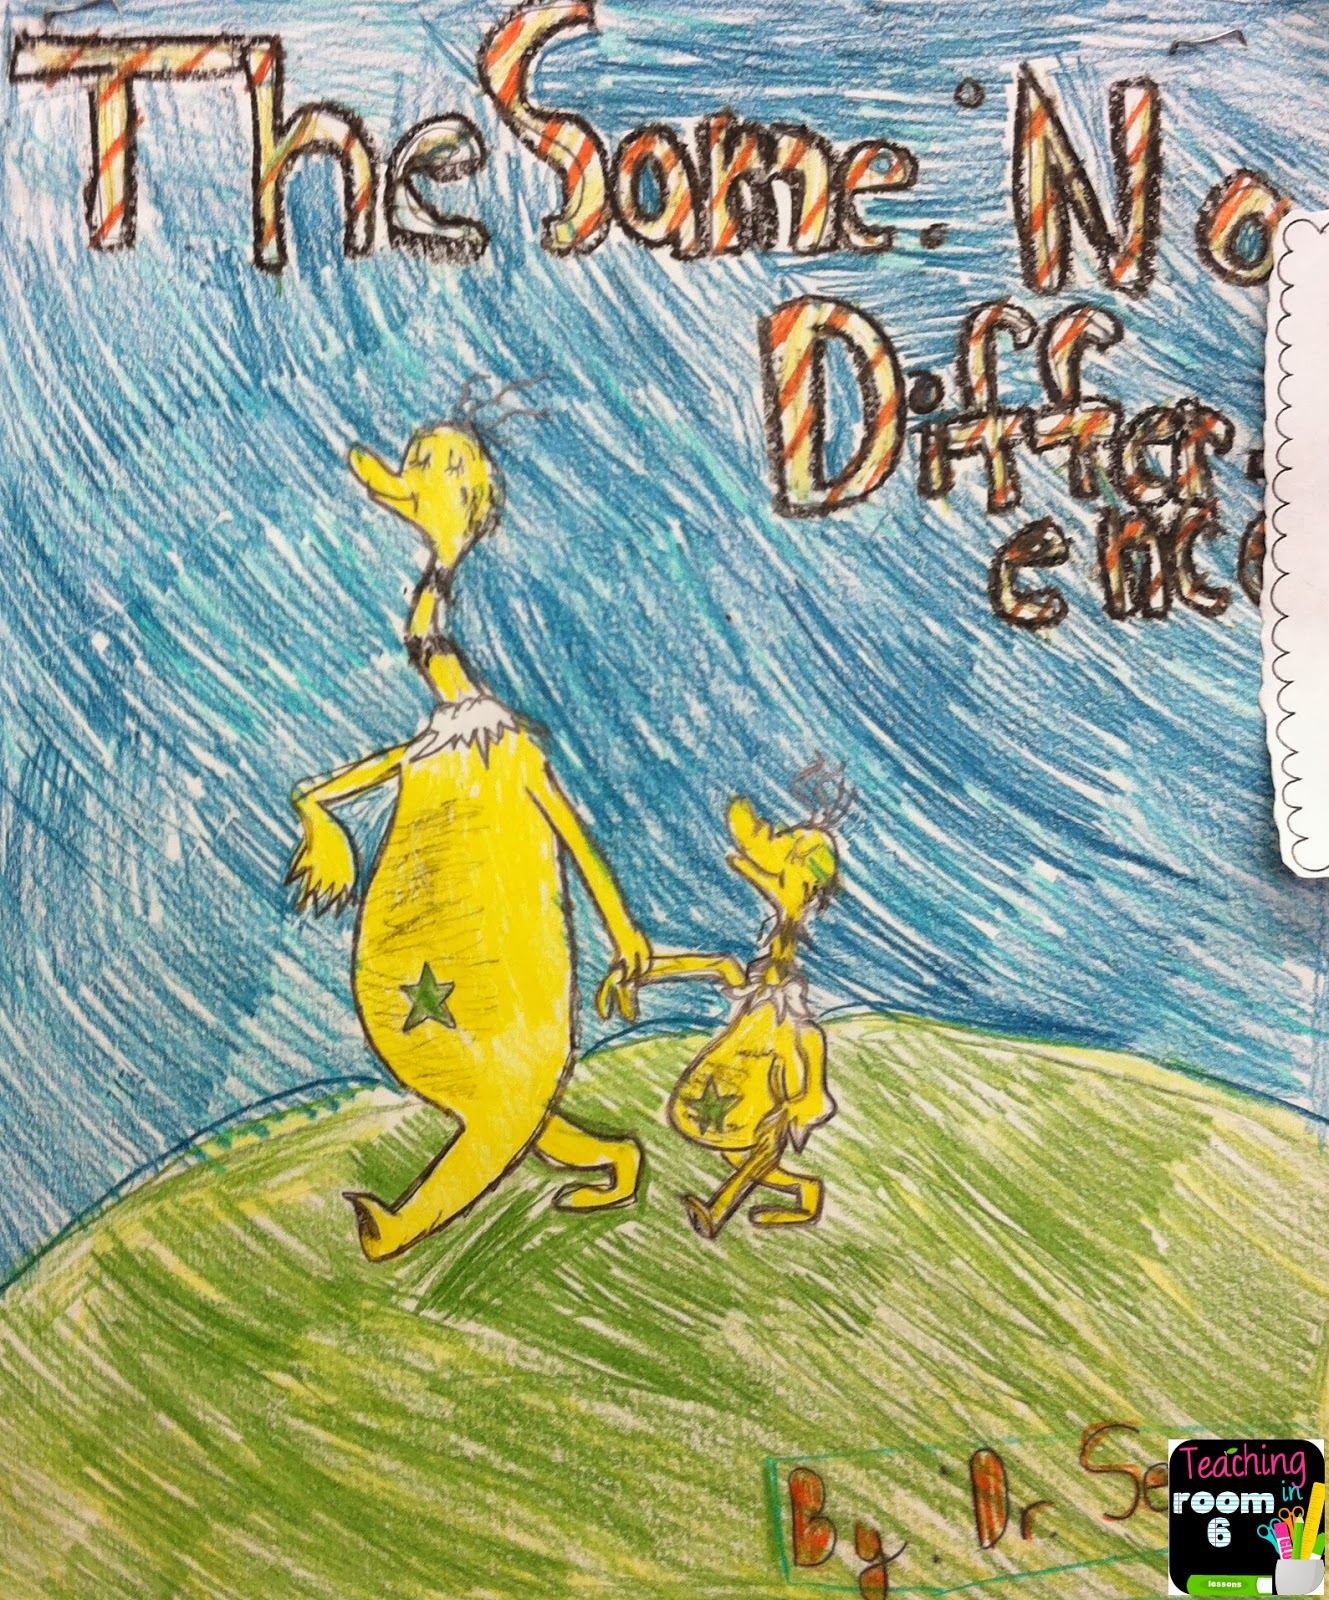 Theme and Inference in Dr. Seuss - Teaching in Room 6